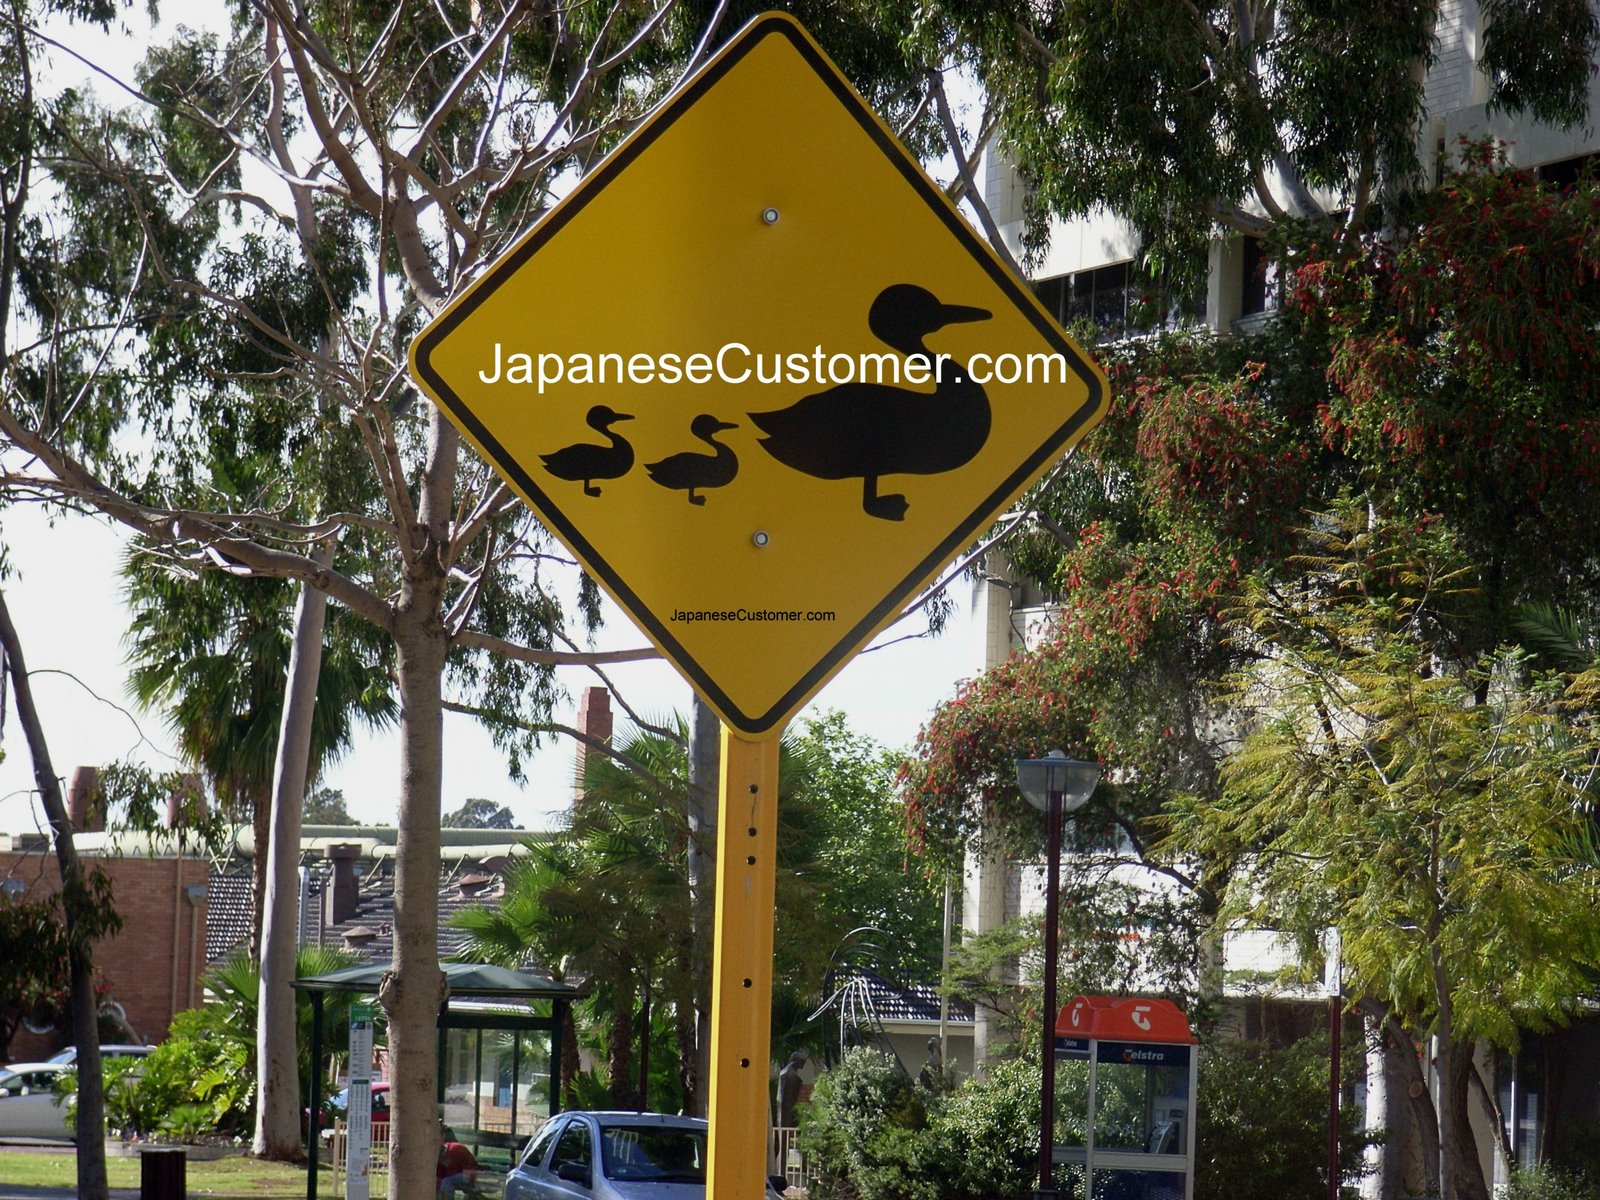 Australian street sign Copyright Peter Hanami 2010